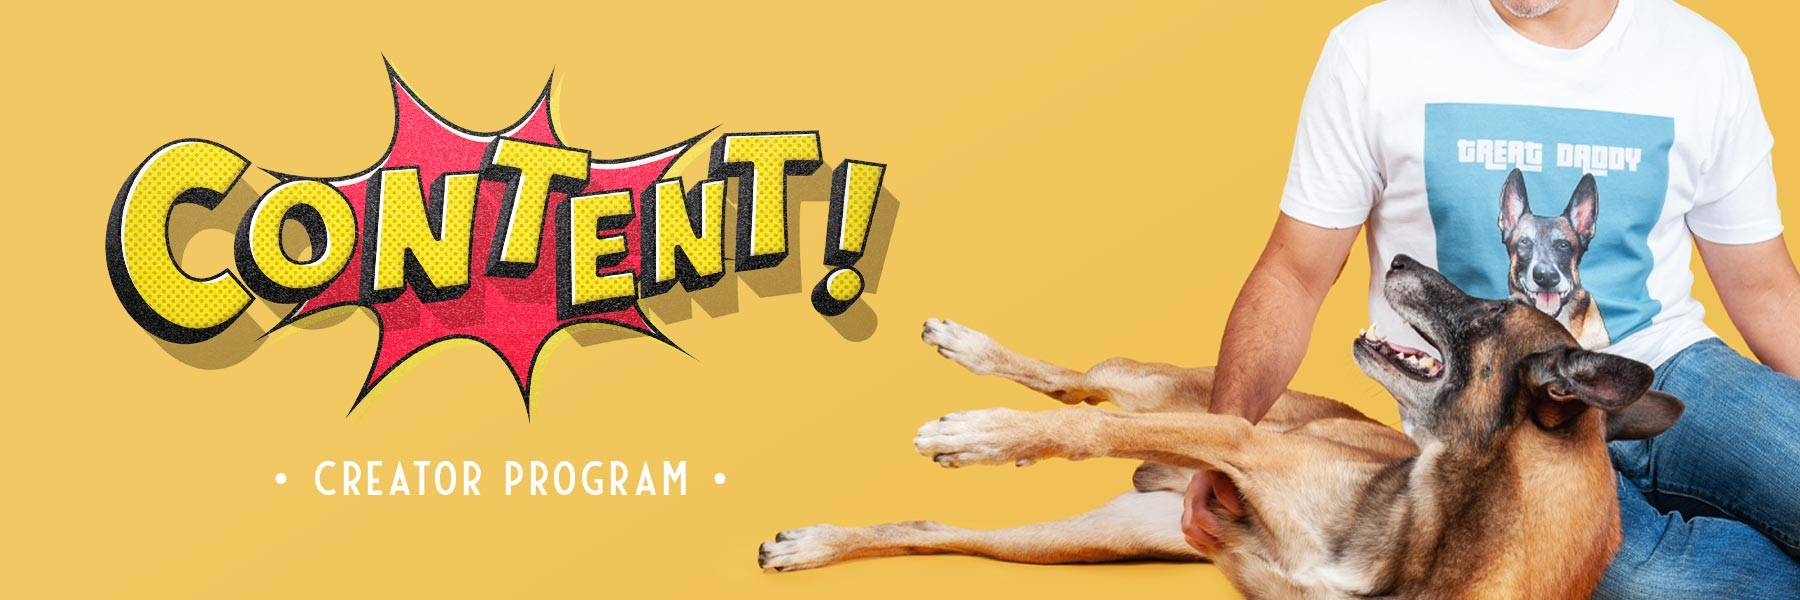 content creator banner - man with dog